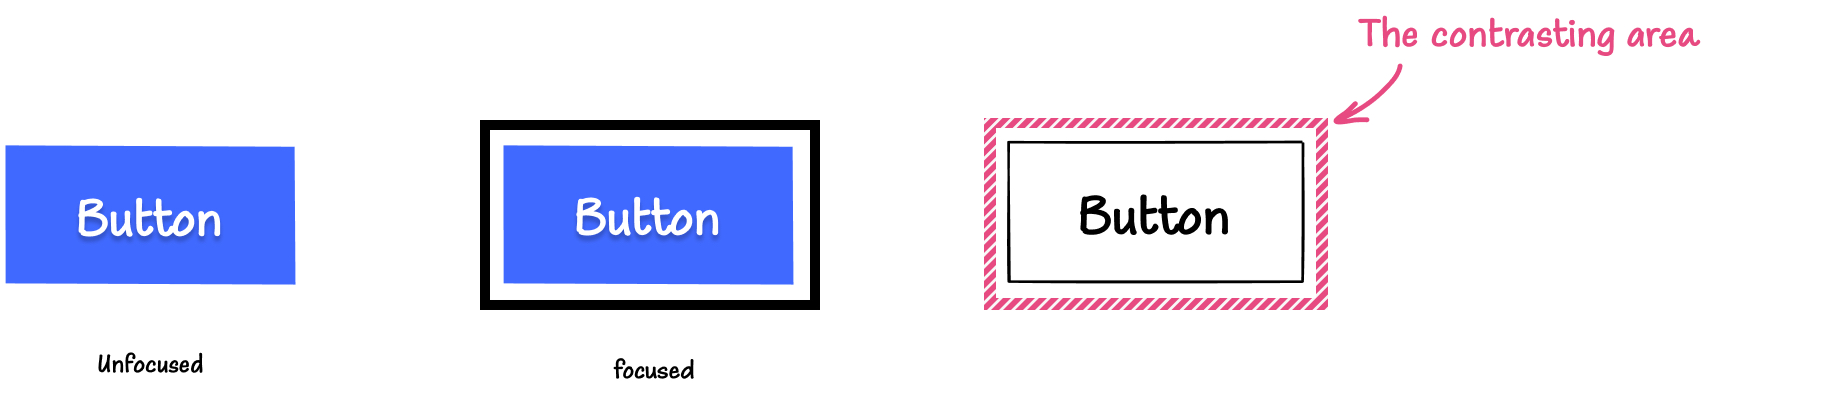 Illustration: On the left is a blue button with a white label in its default, unfocused state. In the middle is the blue button with a separated thick black outline. On the right, is a button with the same outline but with a pattern applied to it, indicating that this patterned area is the contrasting area.